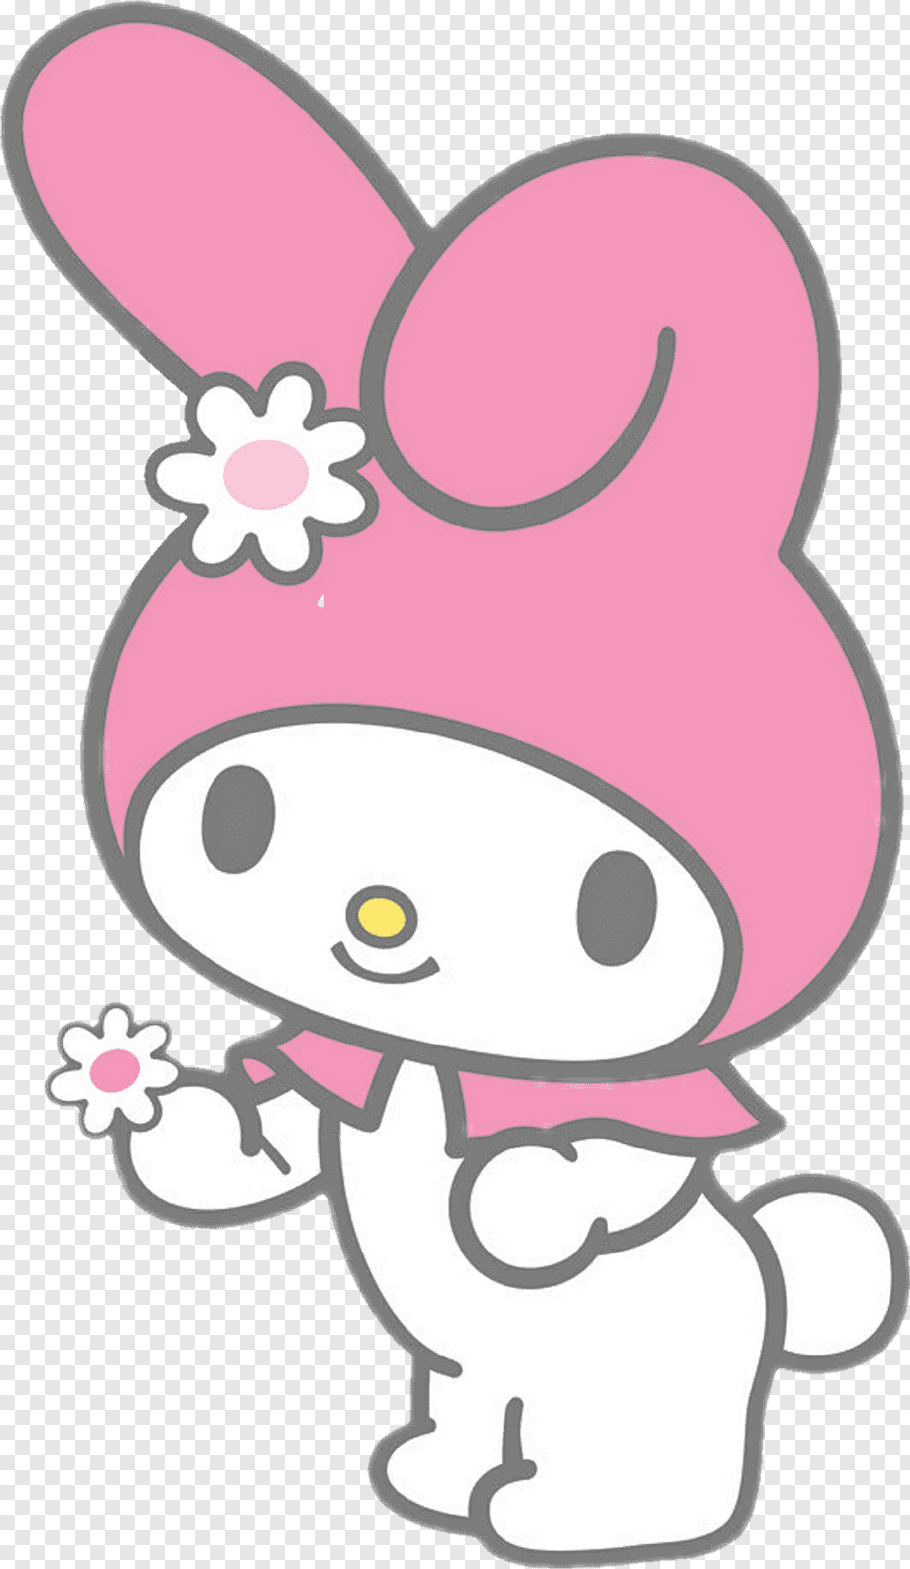 Hello Kitty Head My Melody Sanrio Kuromi Little 910x1569 Wallpaper Teahub Io